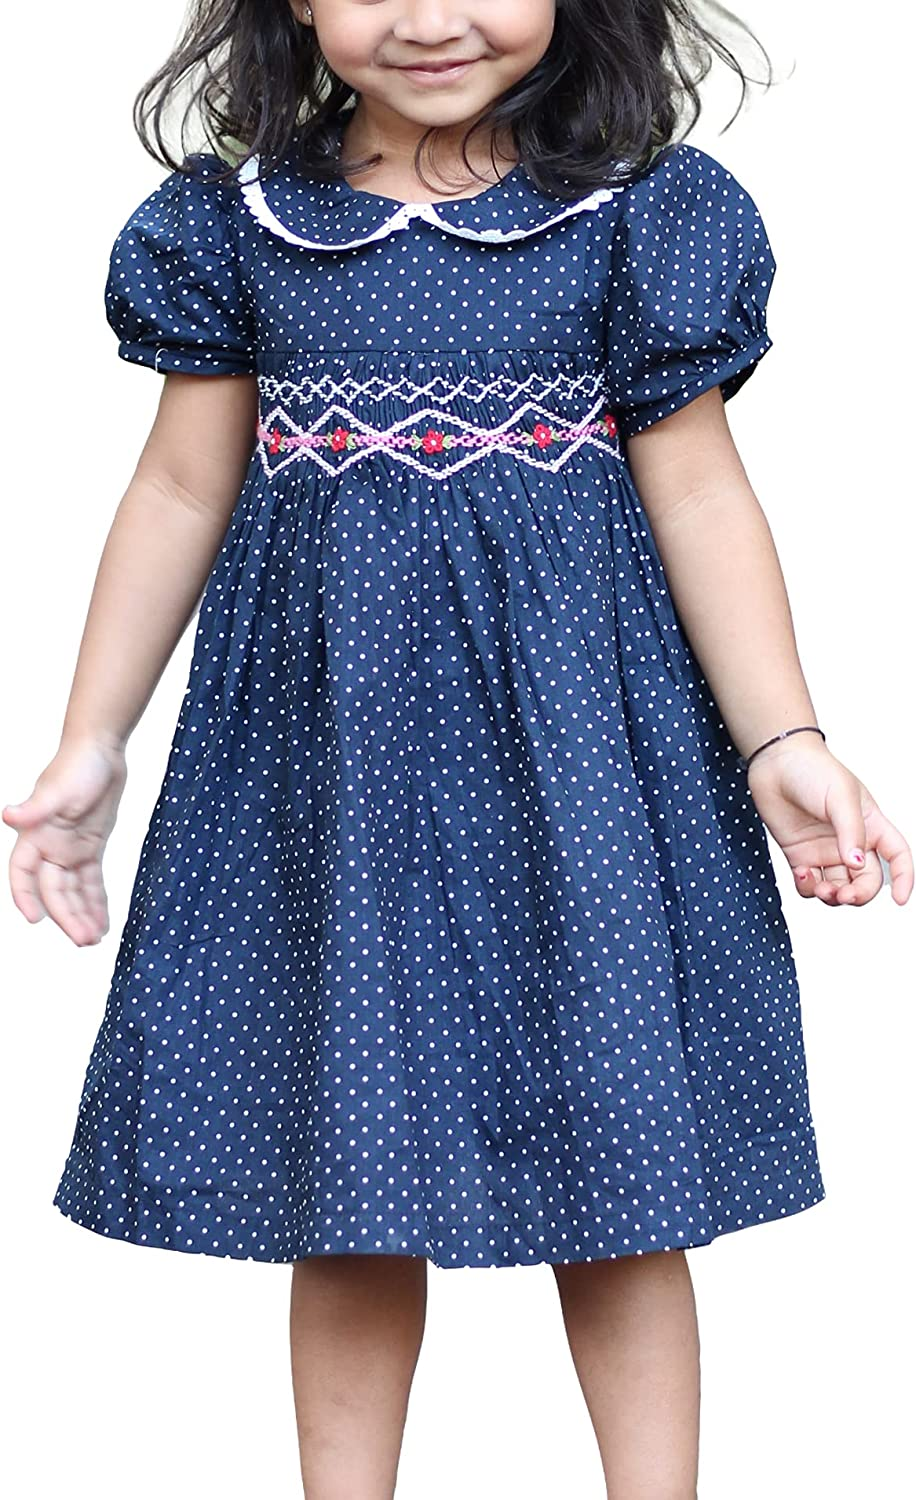 Gojiri Toddler Girls 100% Cotton Hand Smocked Casual Dress with Polka Dots Midnight Blue Color Princess Party Wear Dress